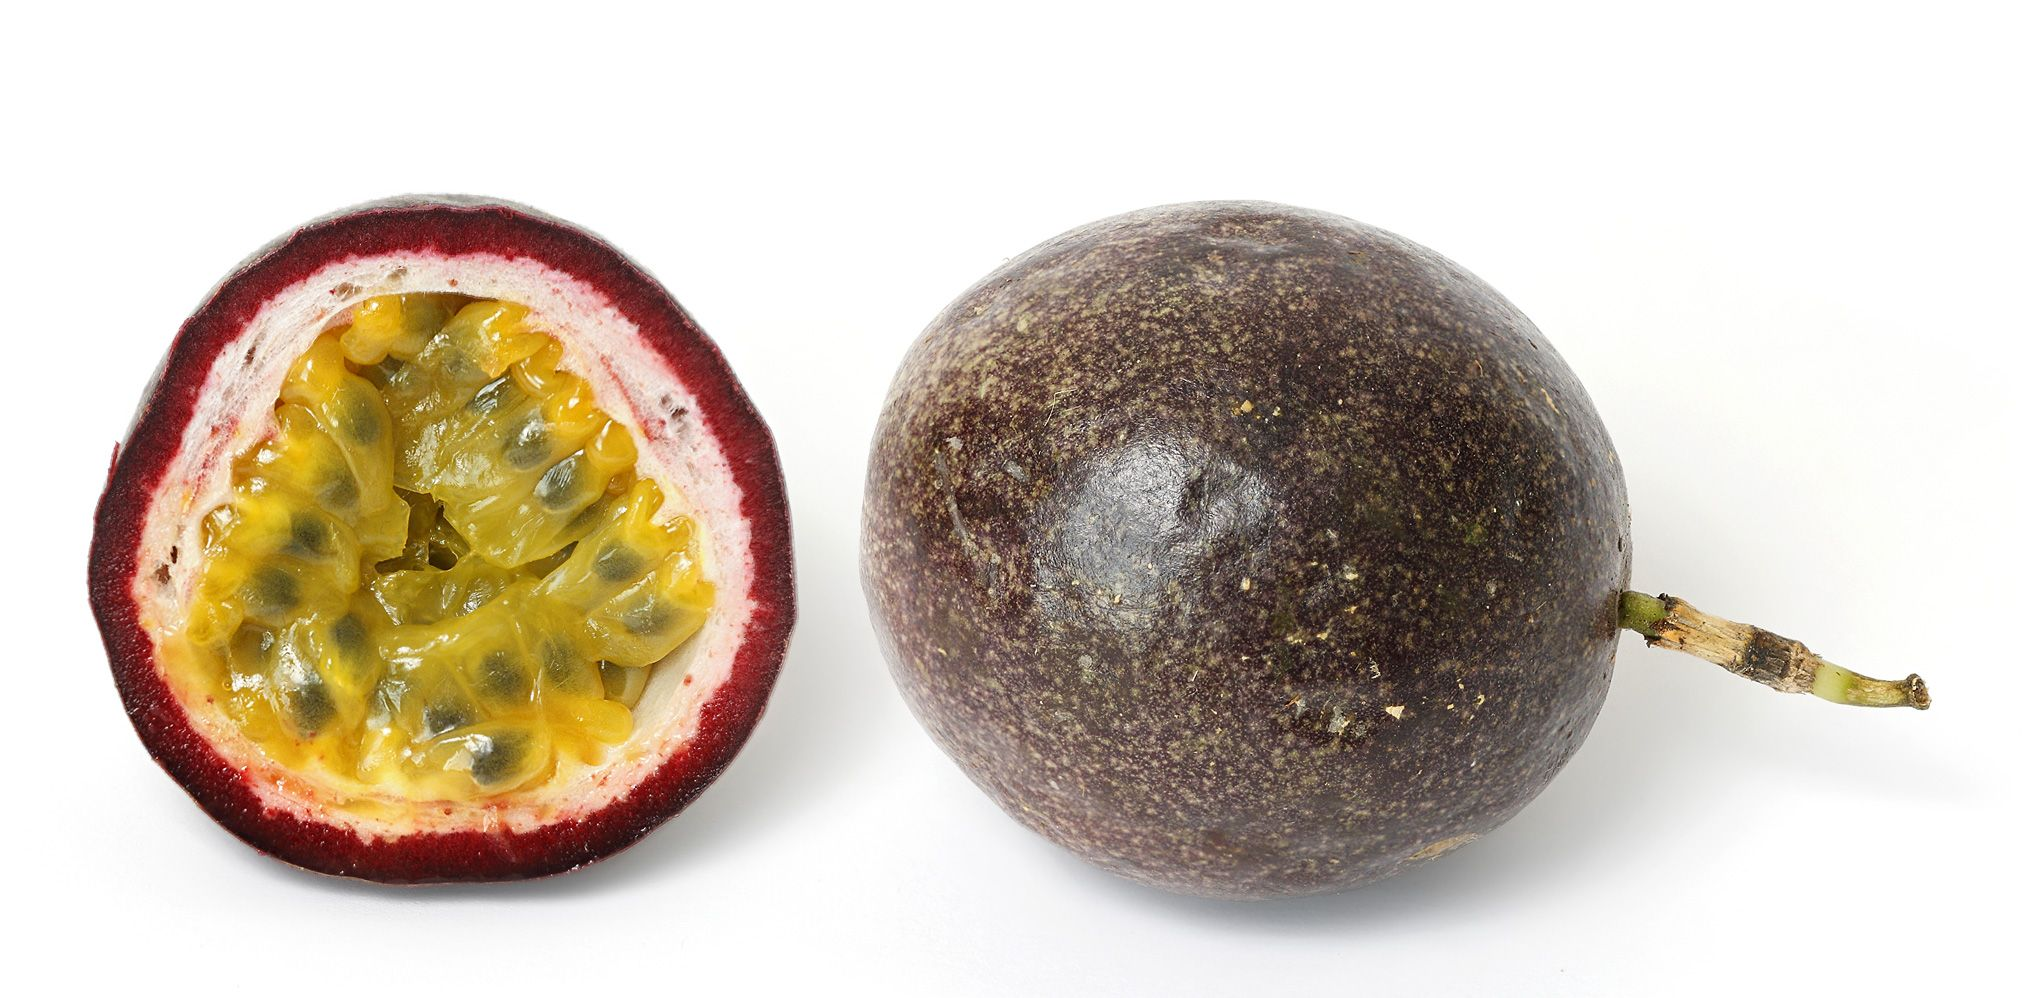 Passion Fruit Cross Section In 2020 Passion Fruit Fruit Fruits And Vegetables